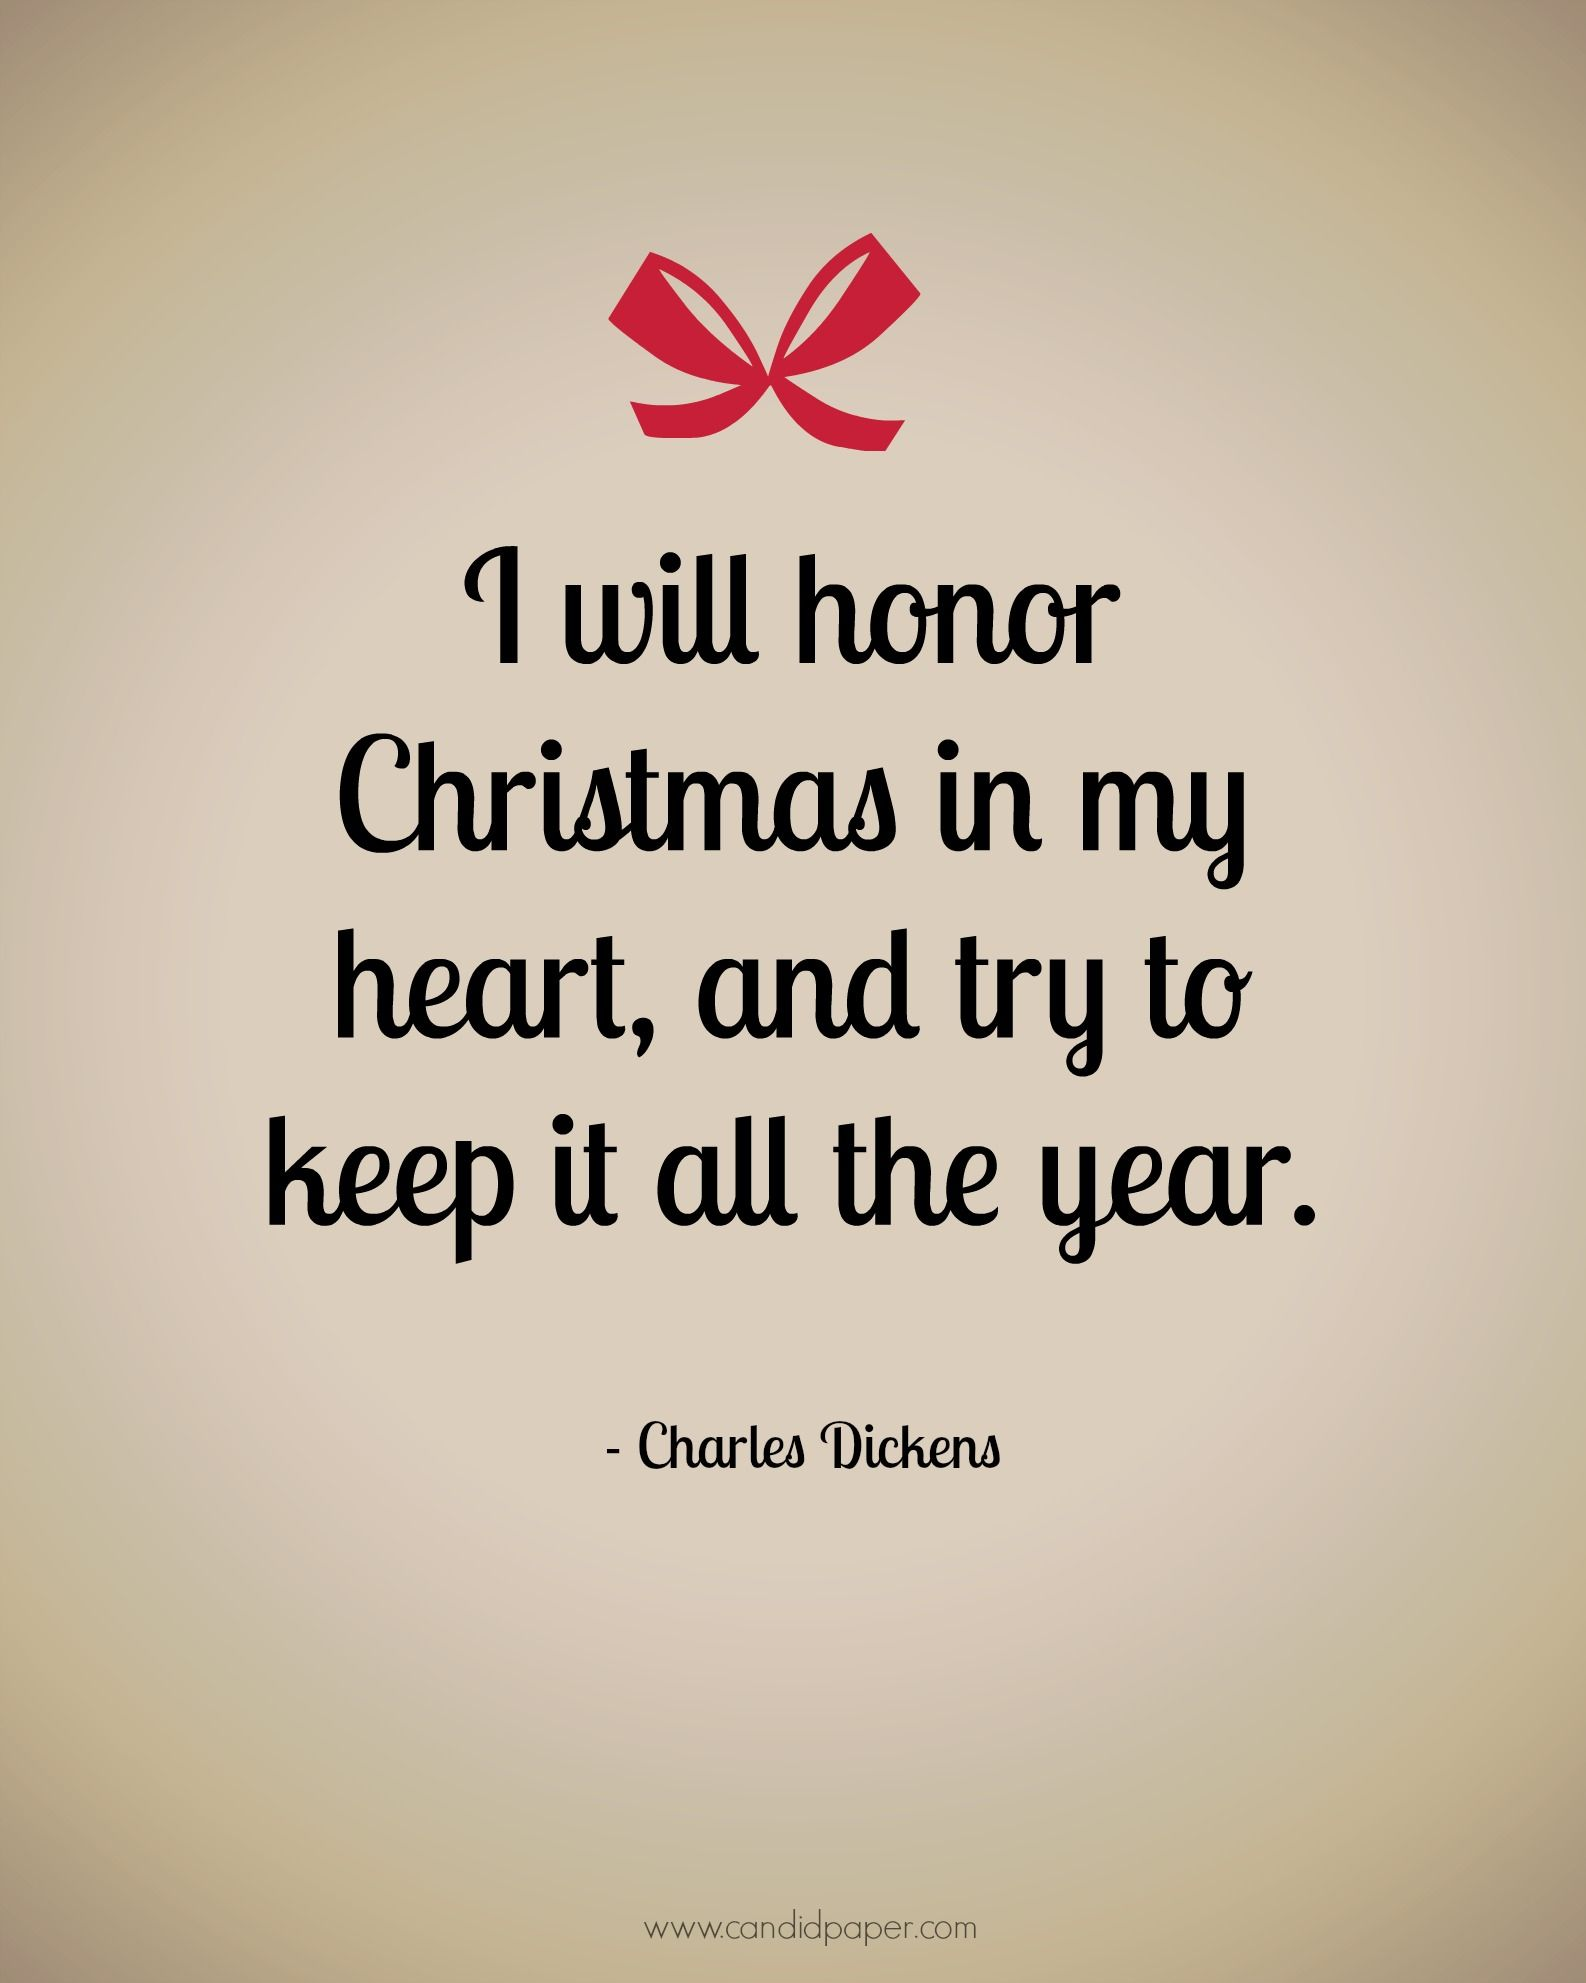 I will honor Christmas in my heart, and try to keep it all the year ...